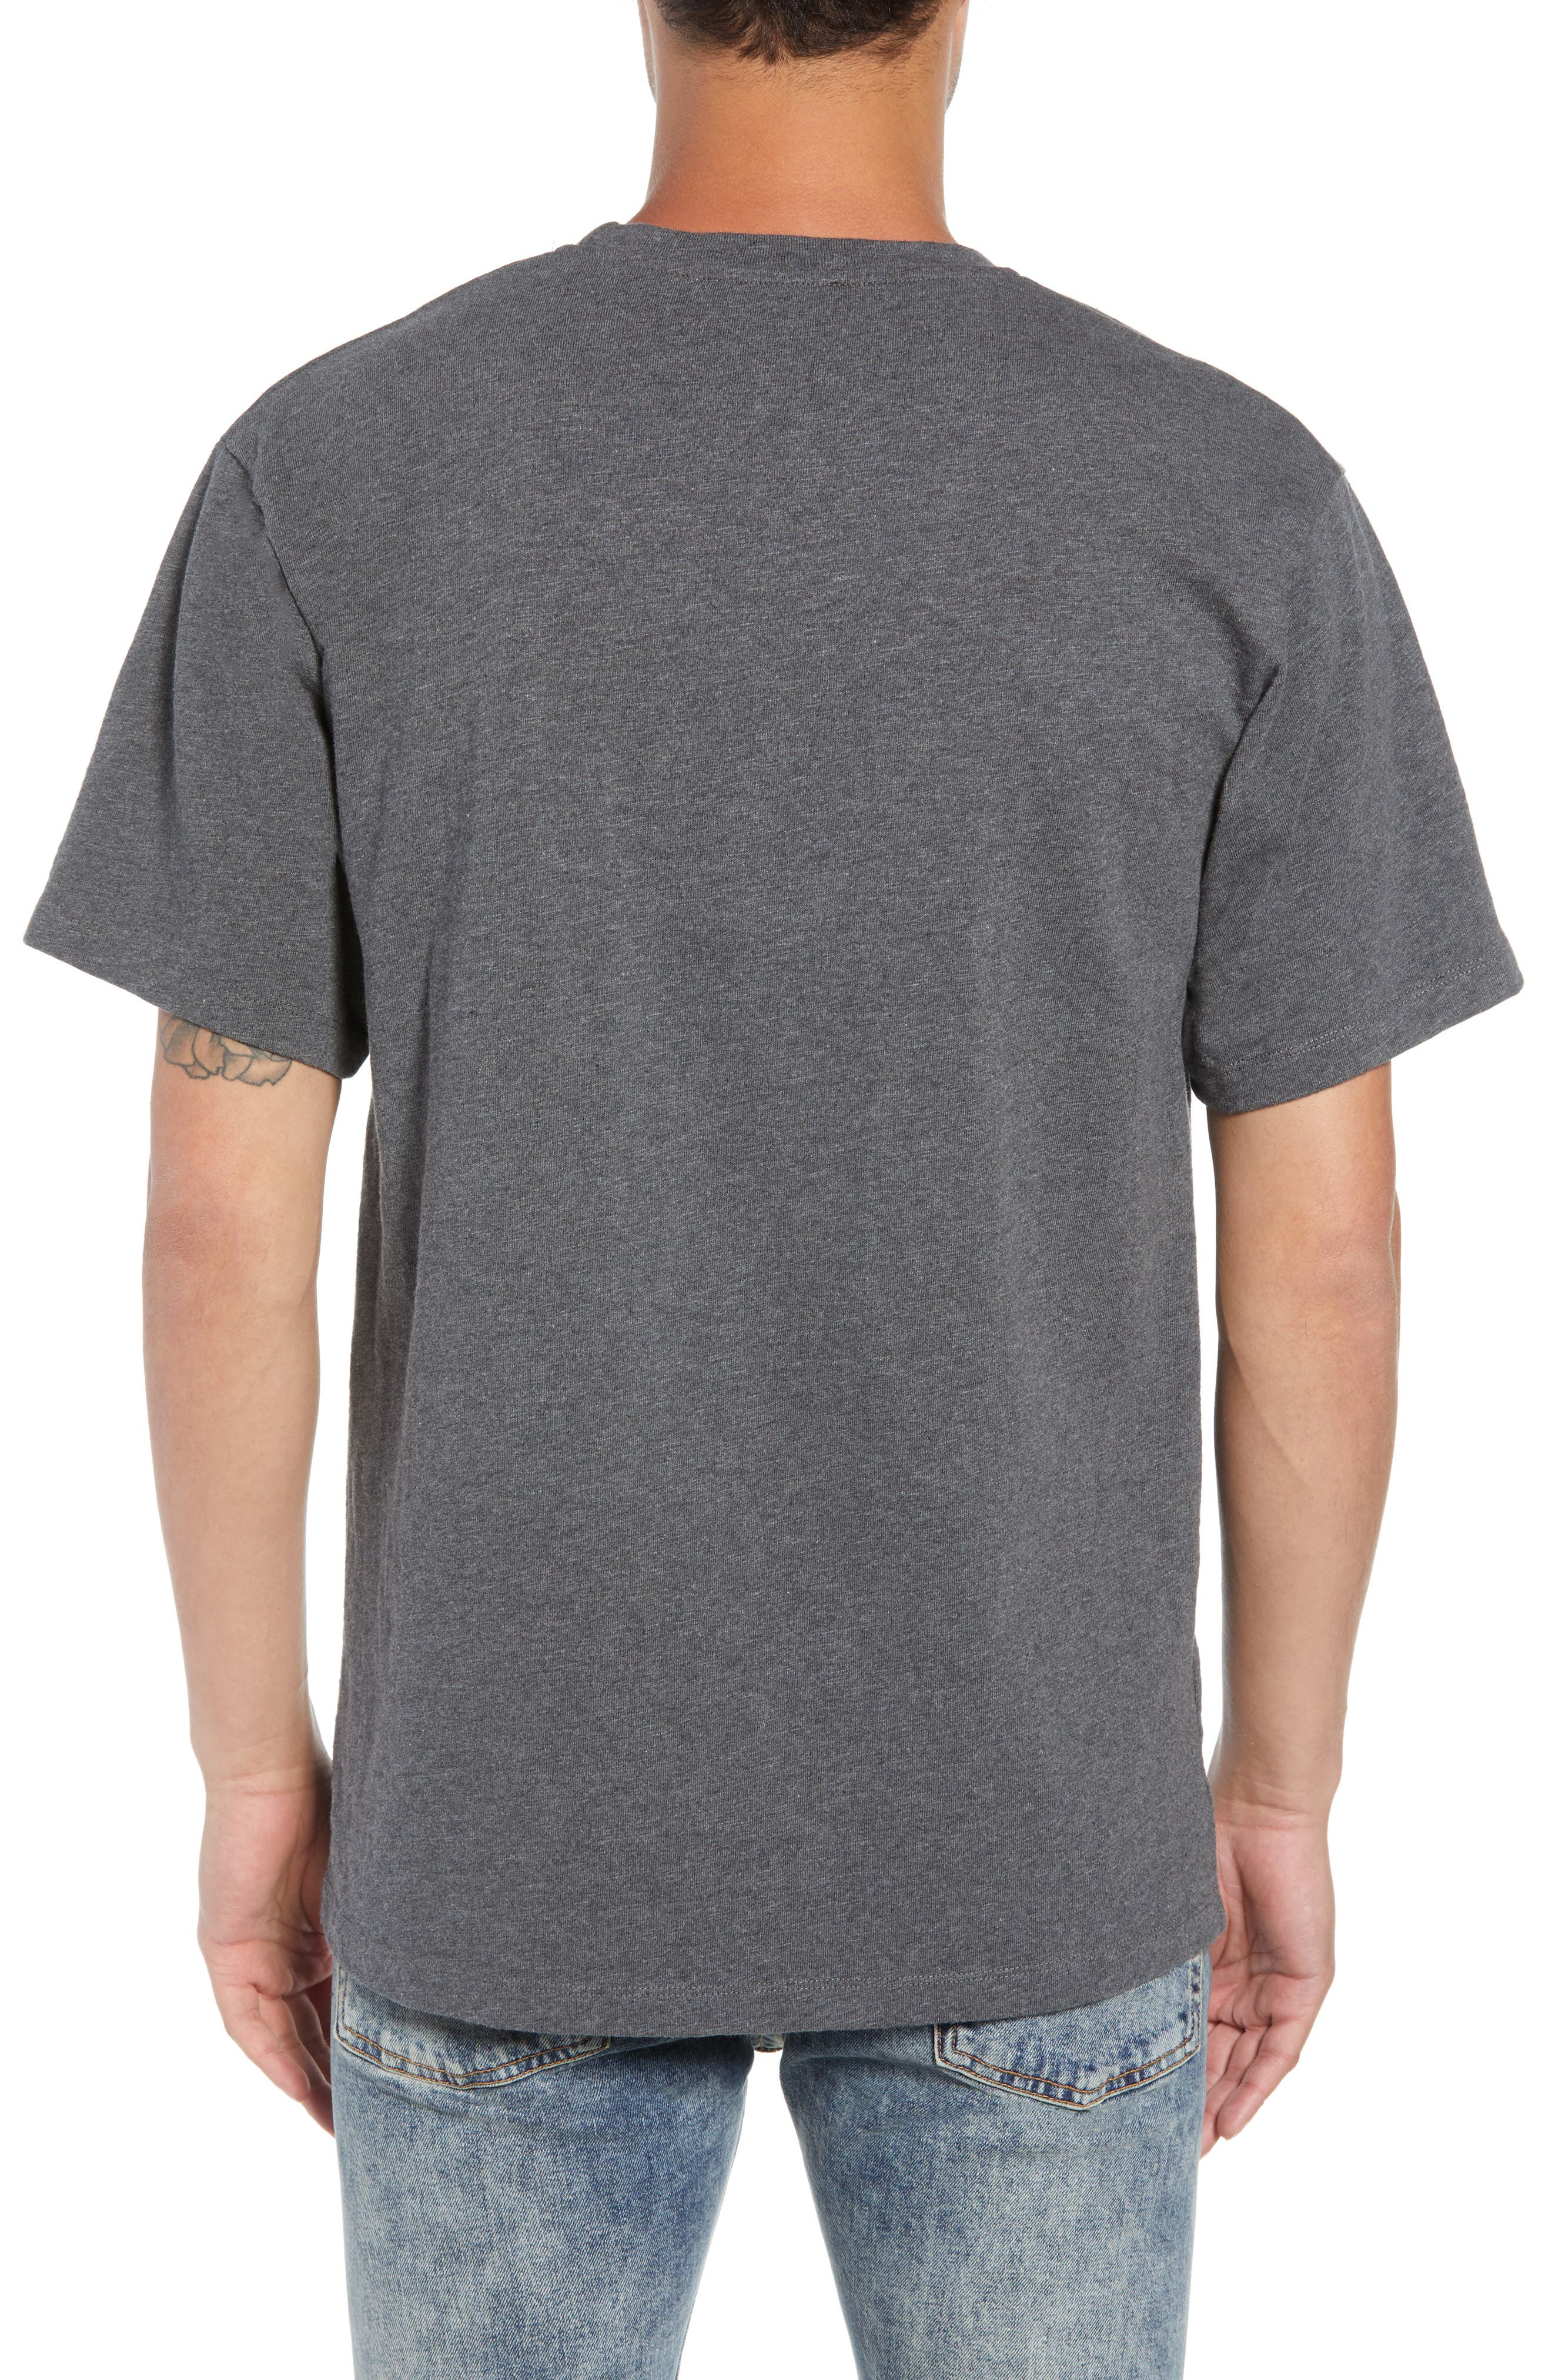 Fire Walk with Me Graphic T-Shirt,                             Alternate thumbnail 2, color,                             GREY